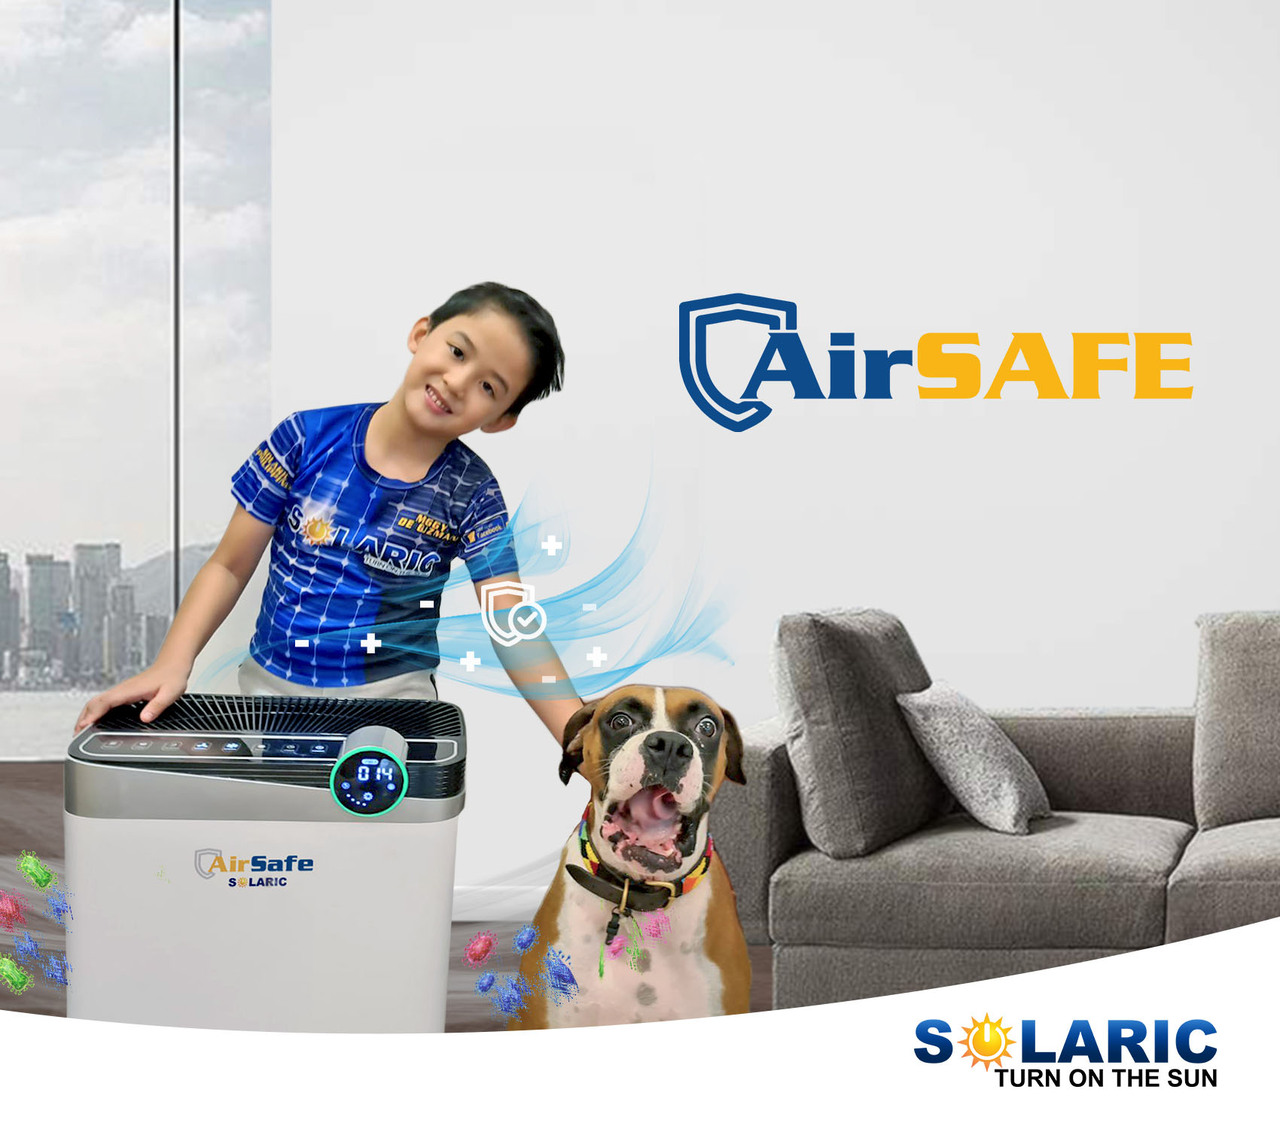 COVID-19 IS AIRBORNE: BE SAFE WITH #AIRSAFE